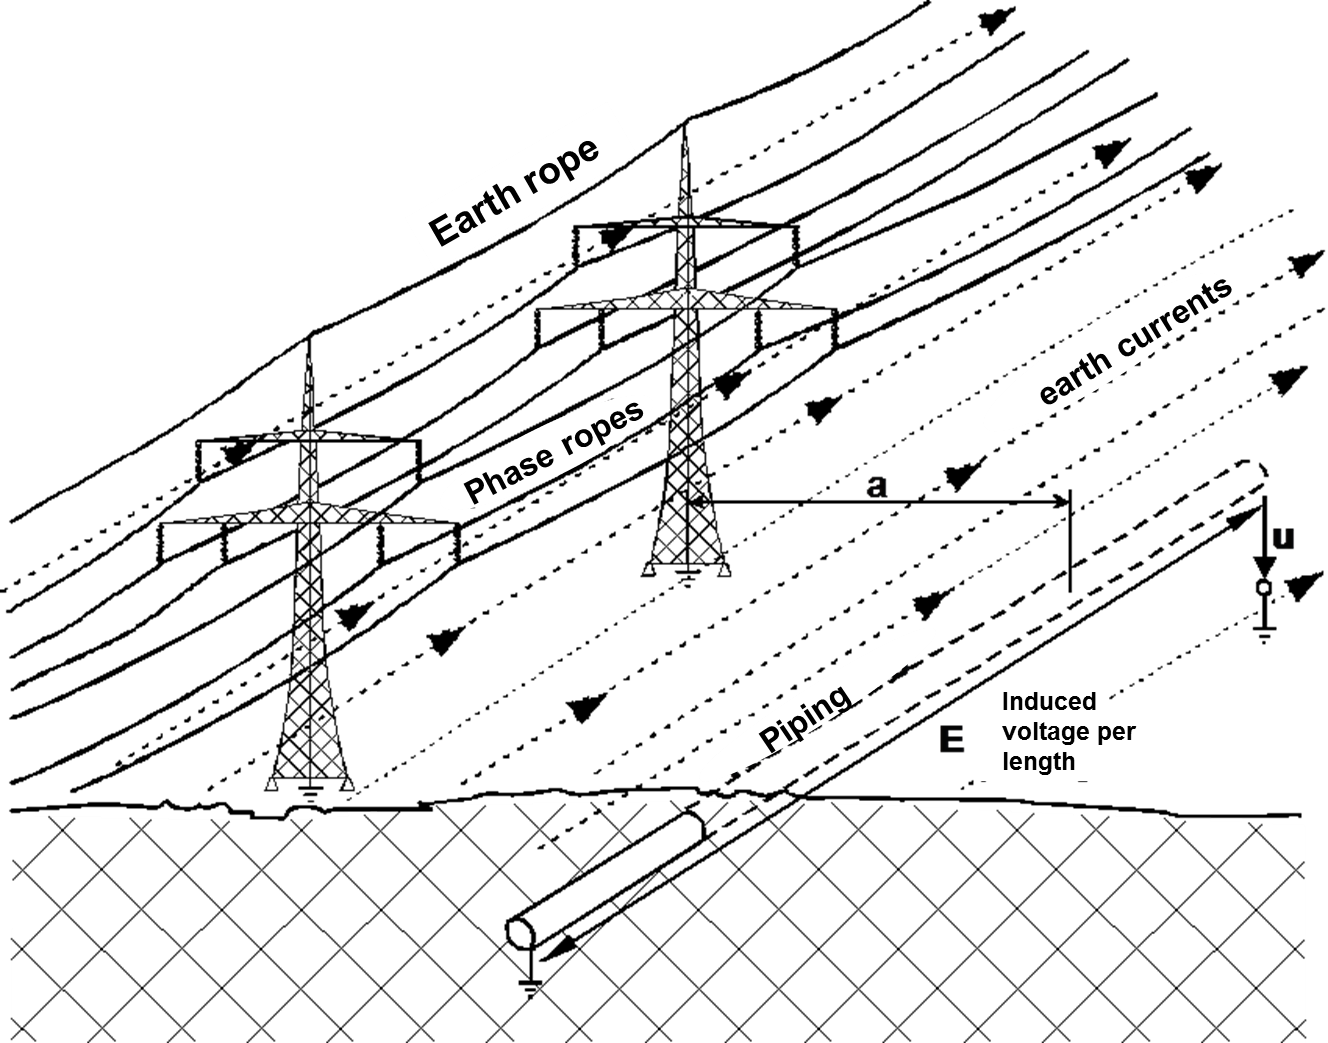 Schematic view of an influencing situation